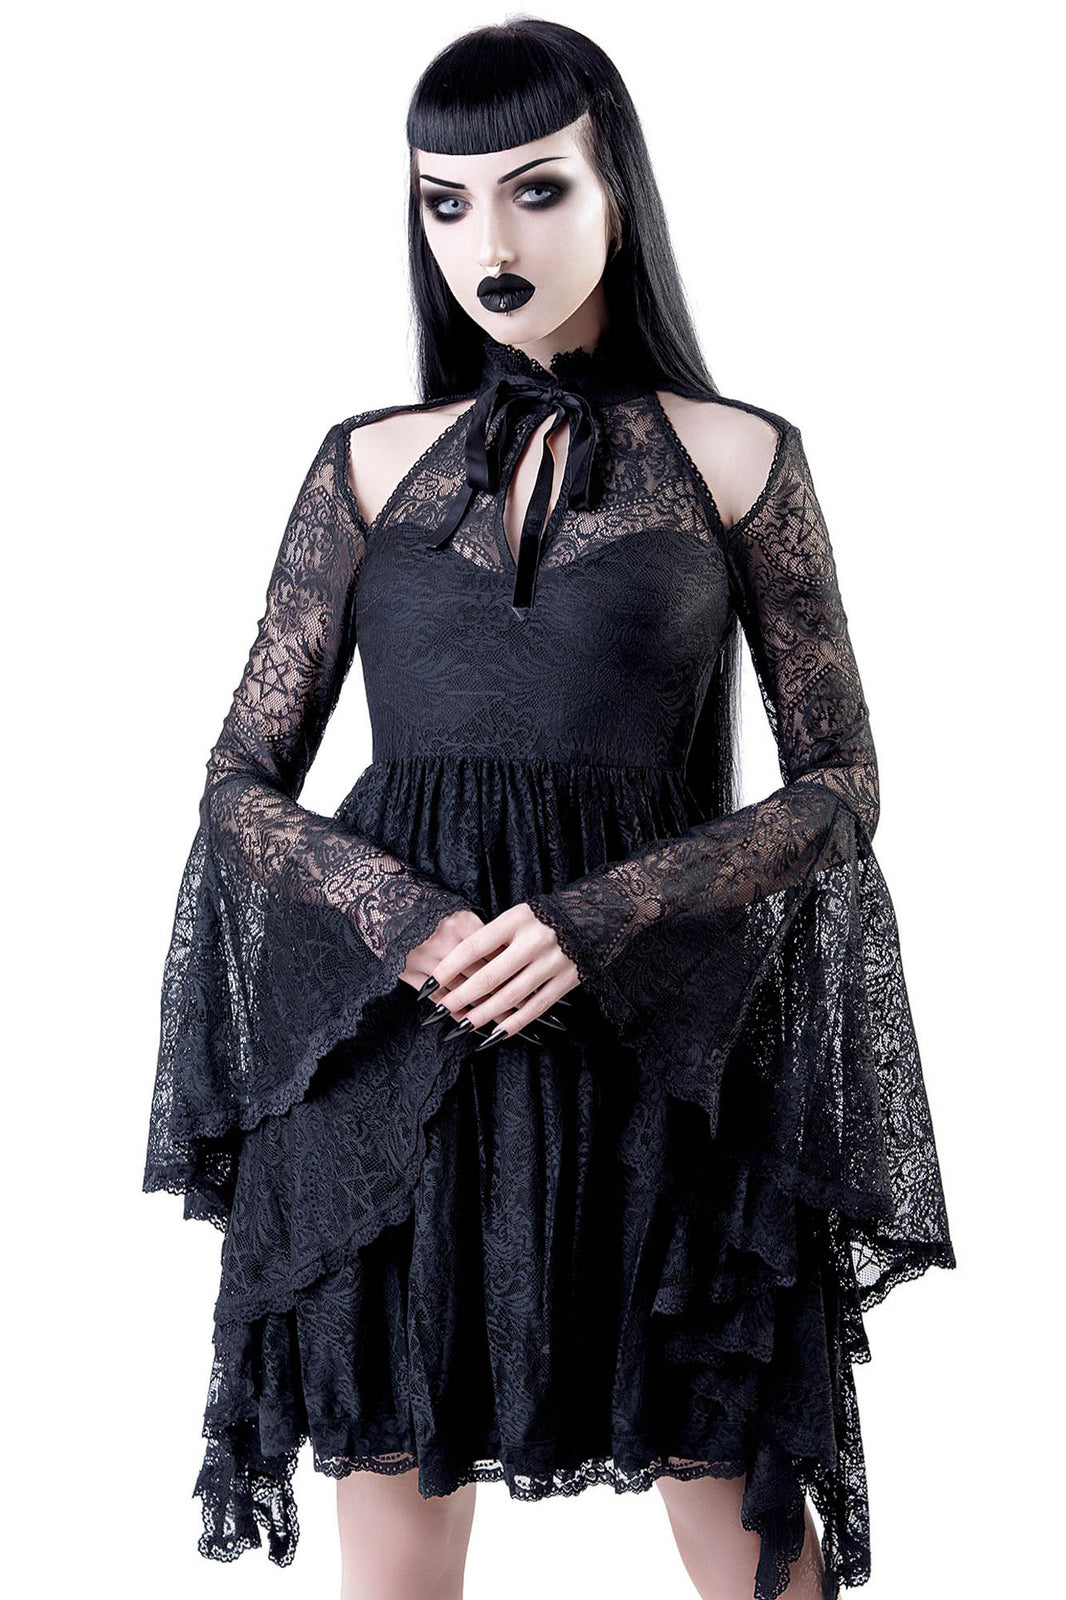 She's Stardust Lace Dress